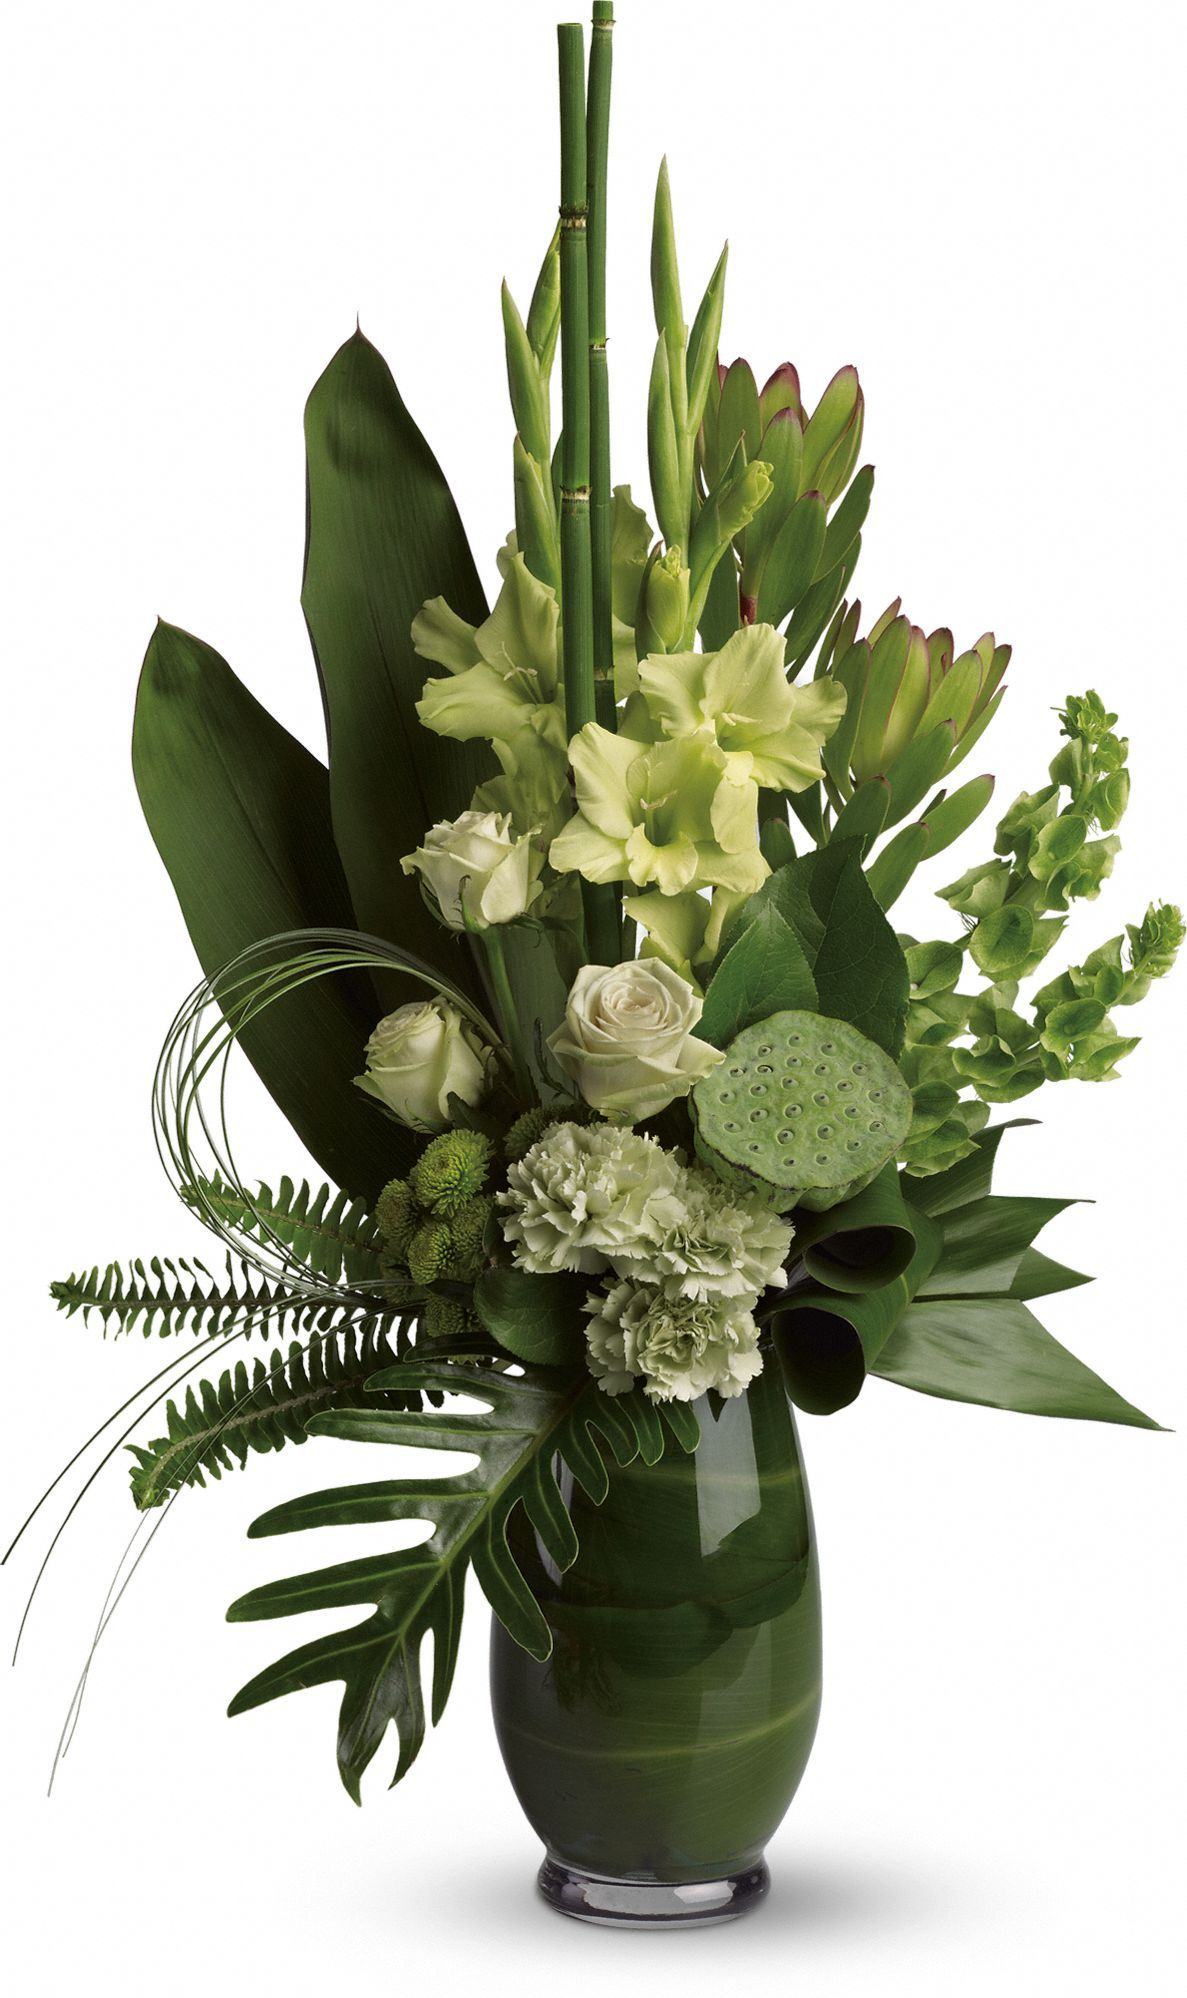 Limelight bouquetis has to be one of my favorites flower order limelight bouquet from naples floral design your local naples florist send limelight bouquet for fresh and fast flower delivery throughout naples izmirmasajfo Gallery